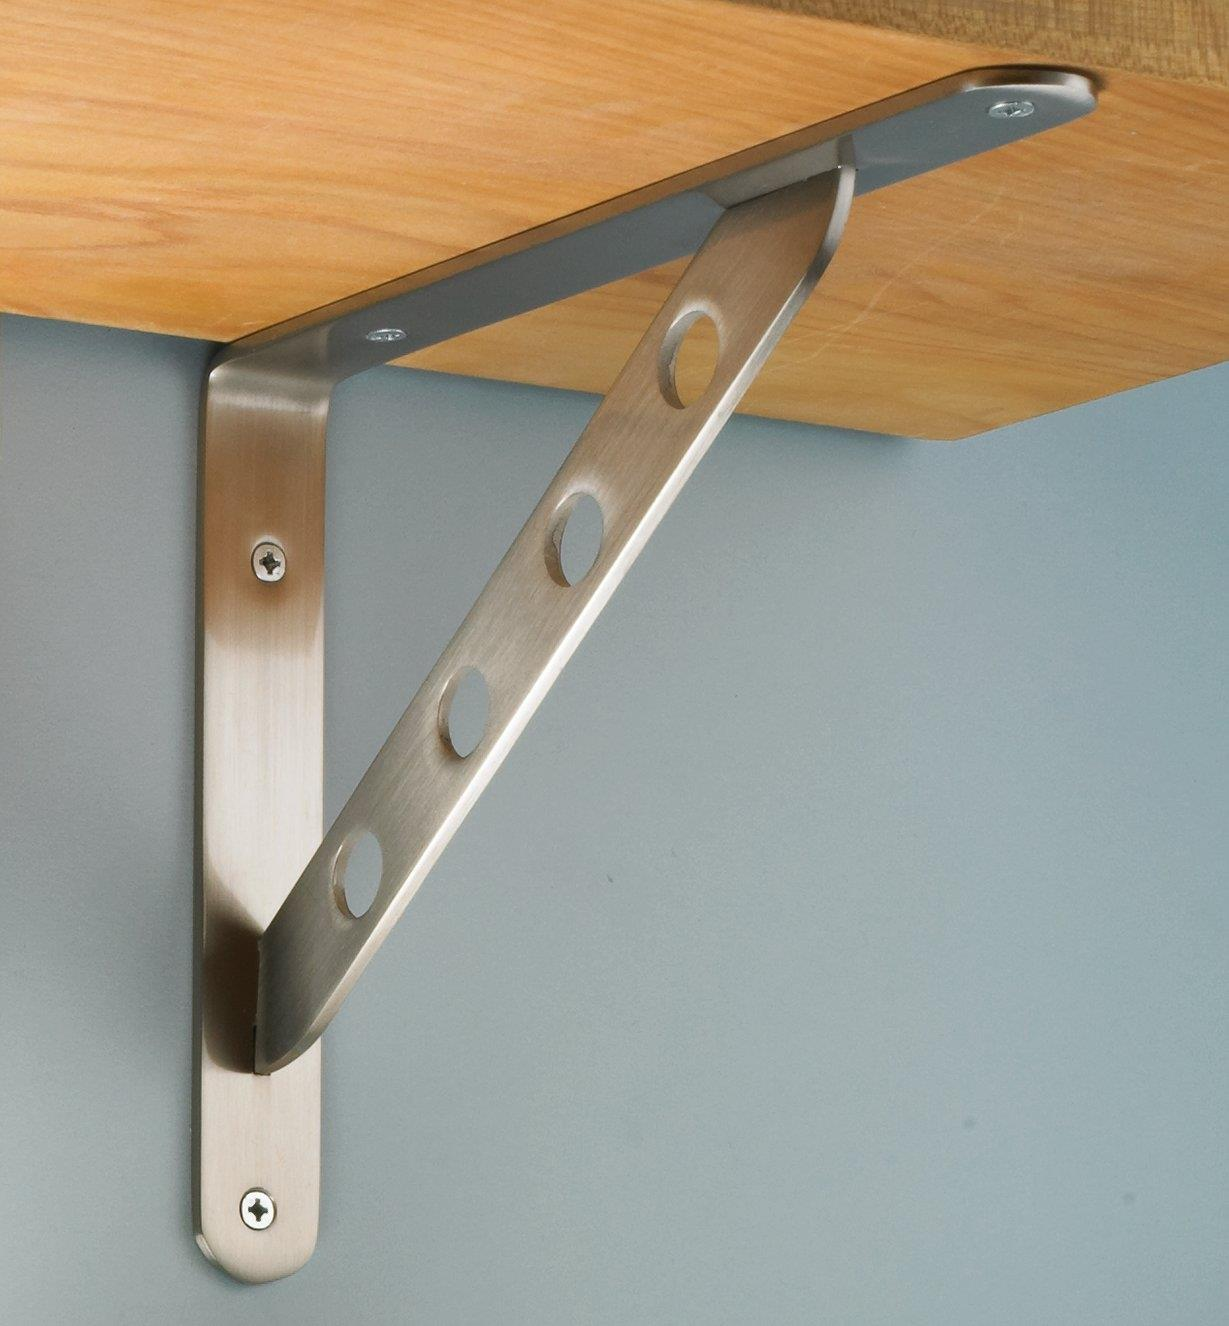 Flat Steel Shelf Bracket mounted under a shelf on a wall